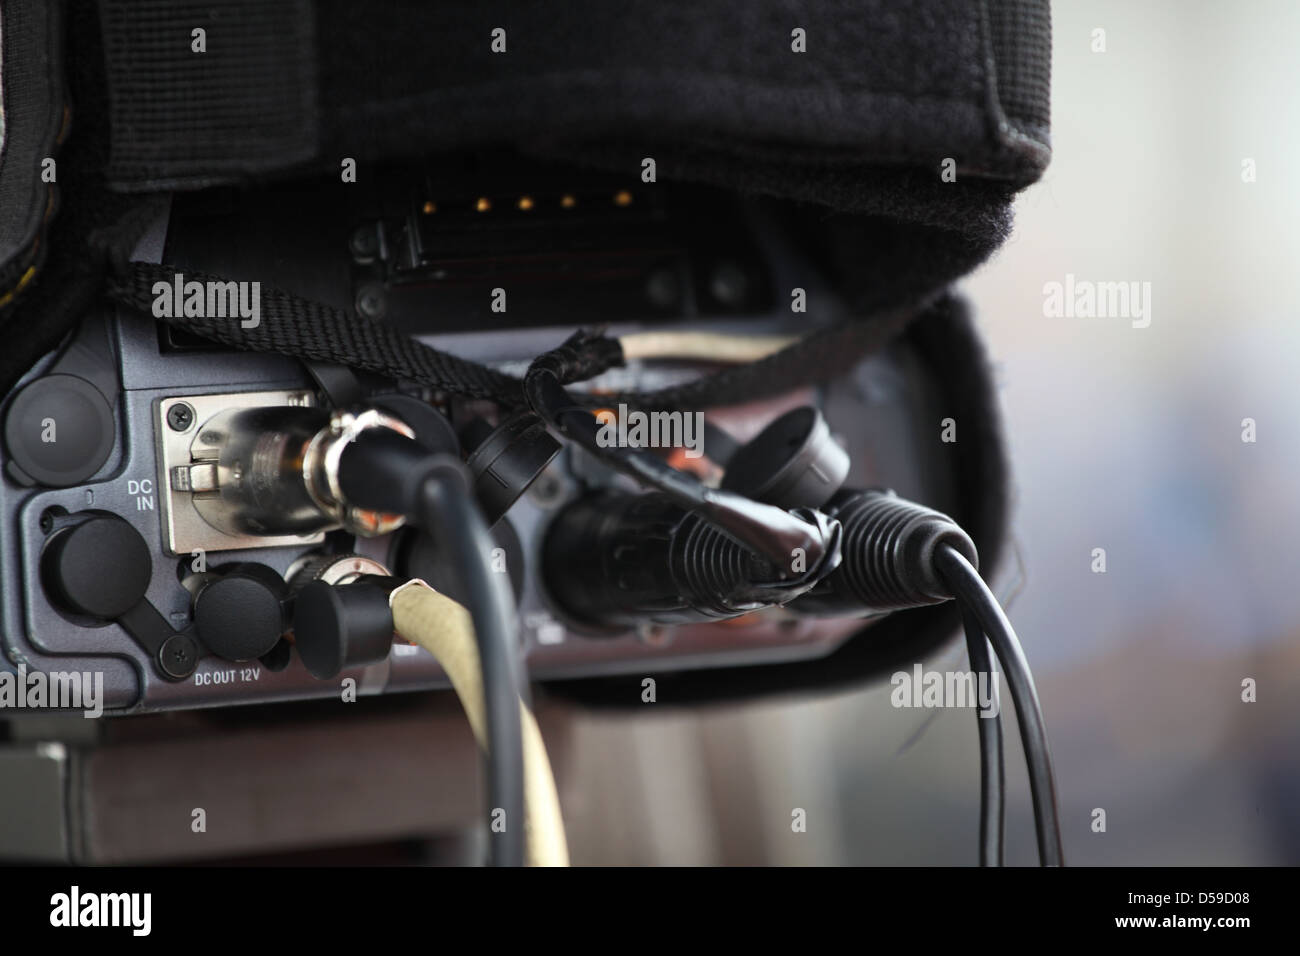 cables connected to a videocamera - Stock Image